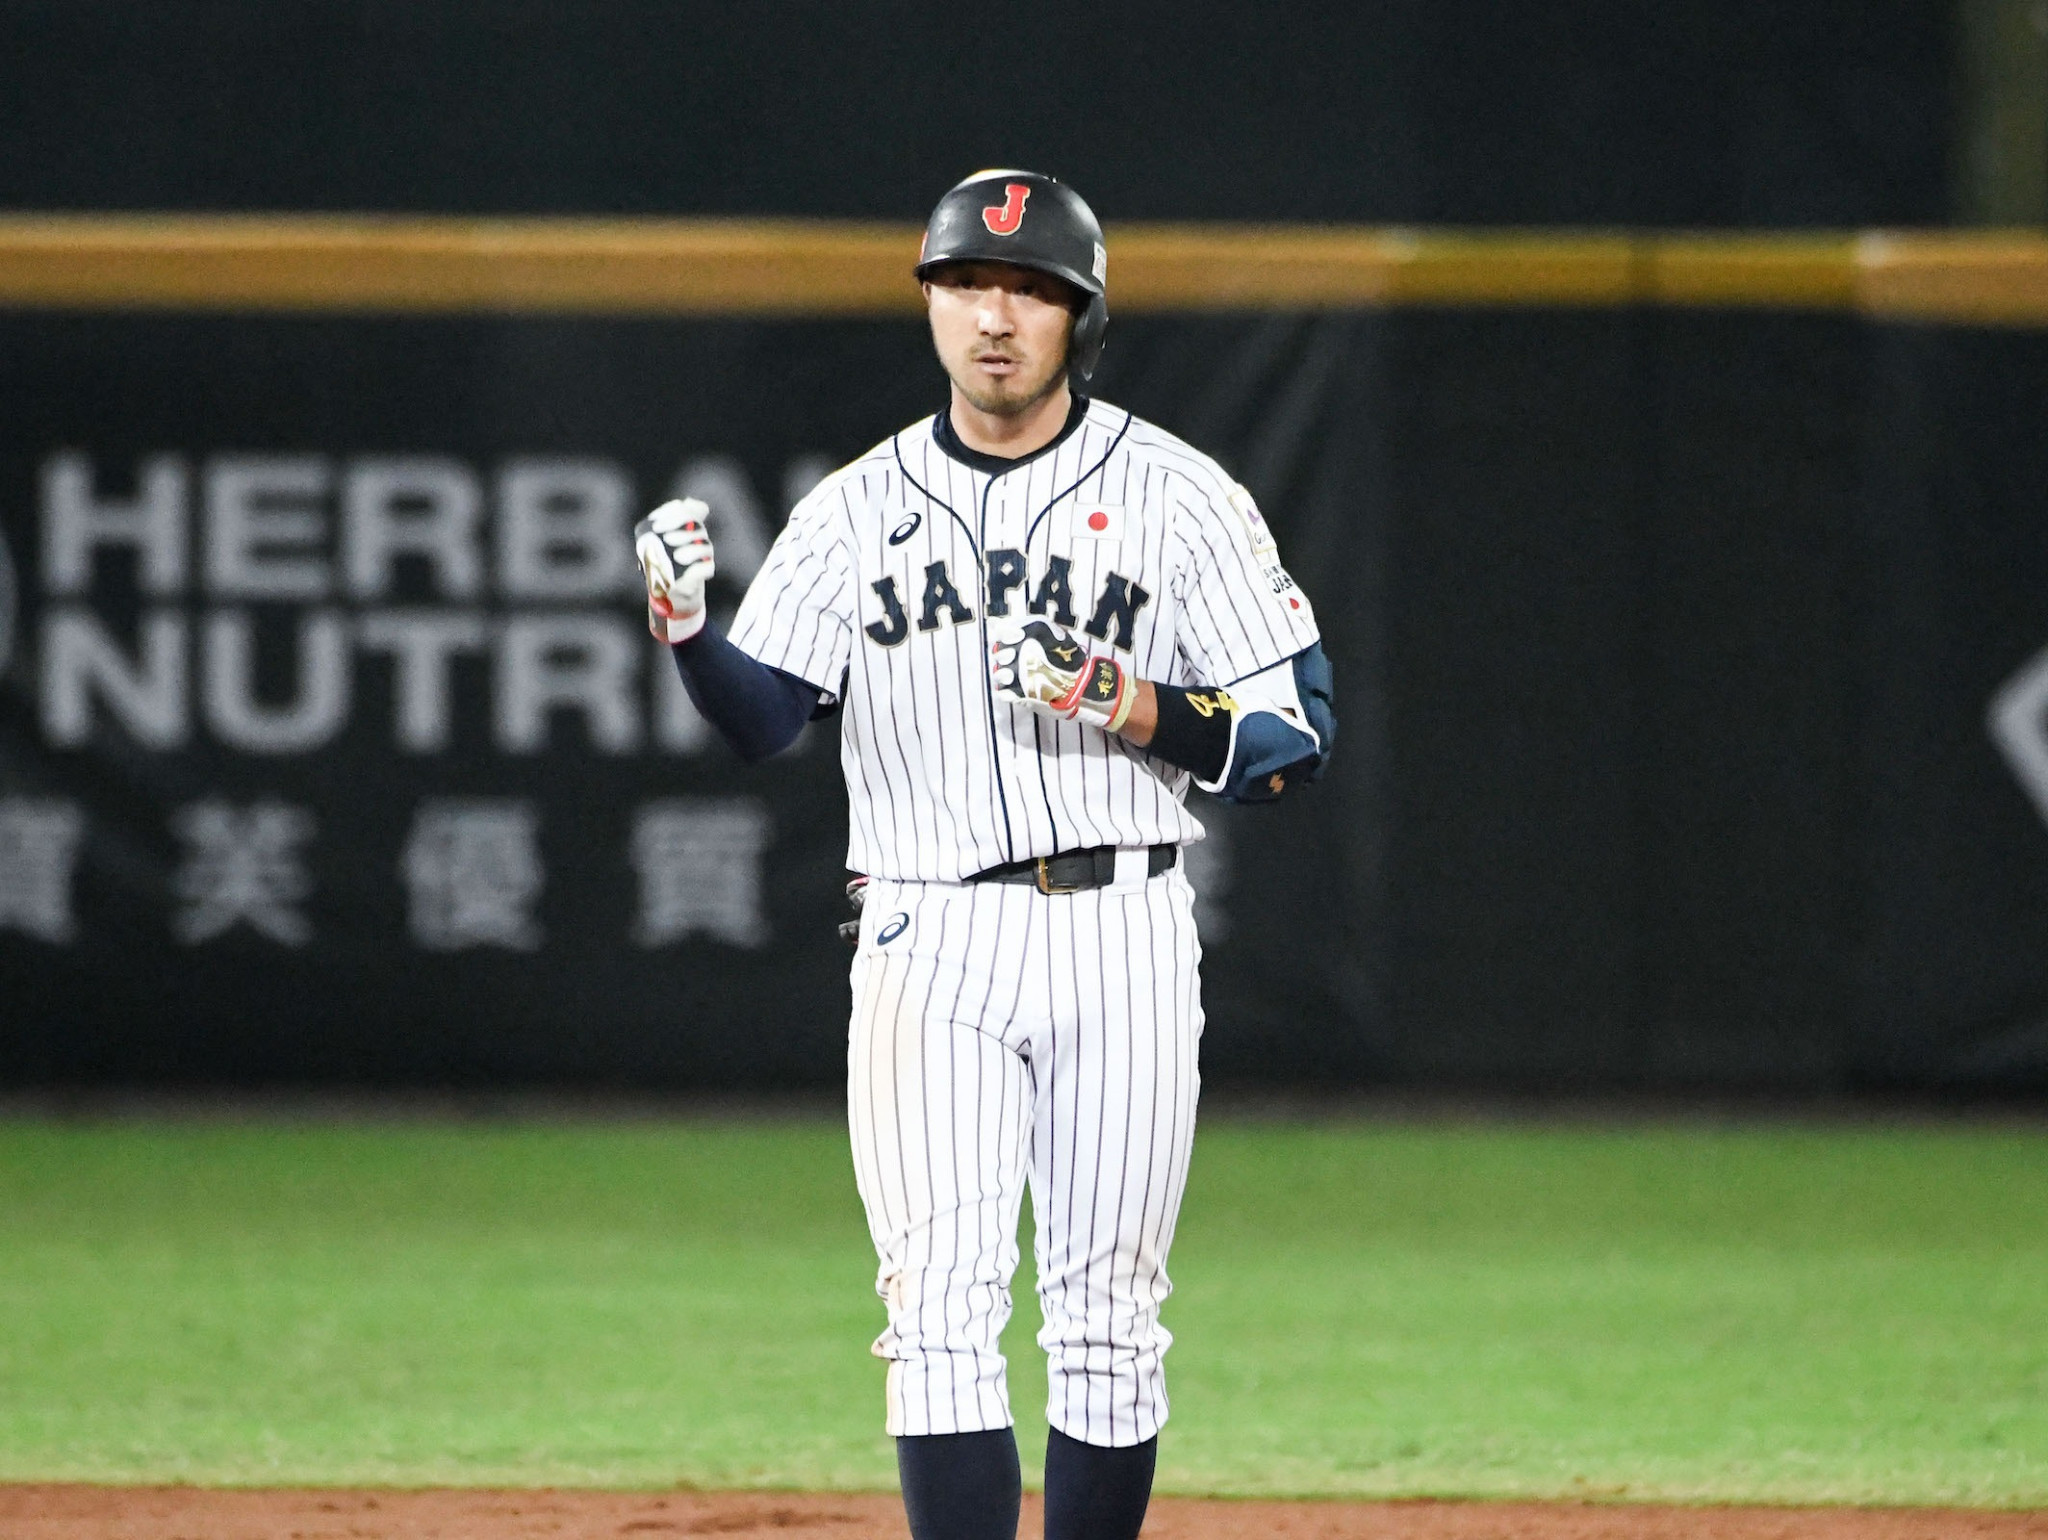 Japan and Chinese Taipei open WBSC Premier12 accounts with victory